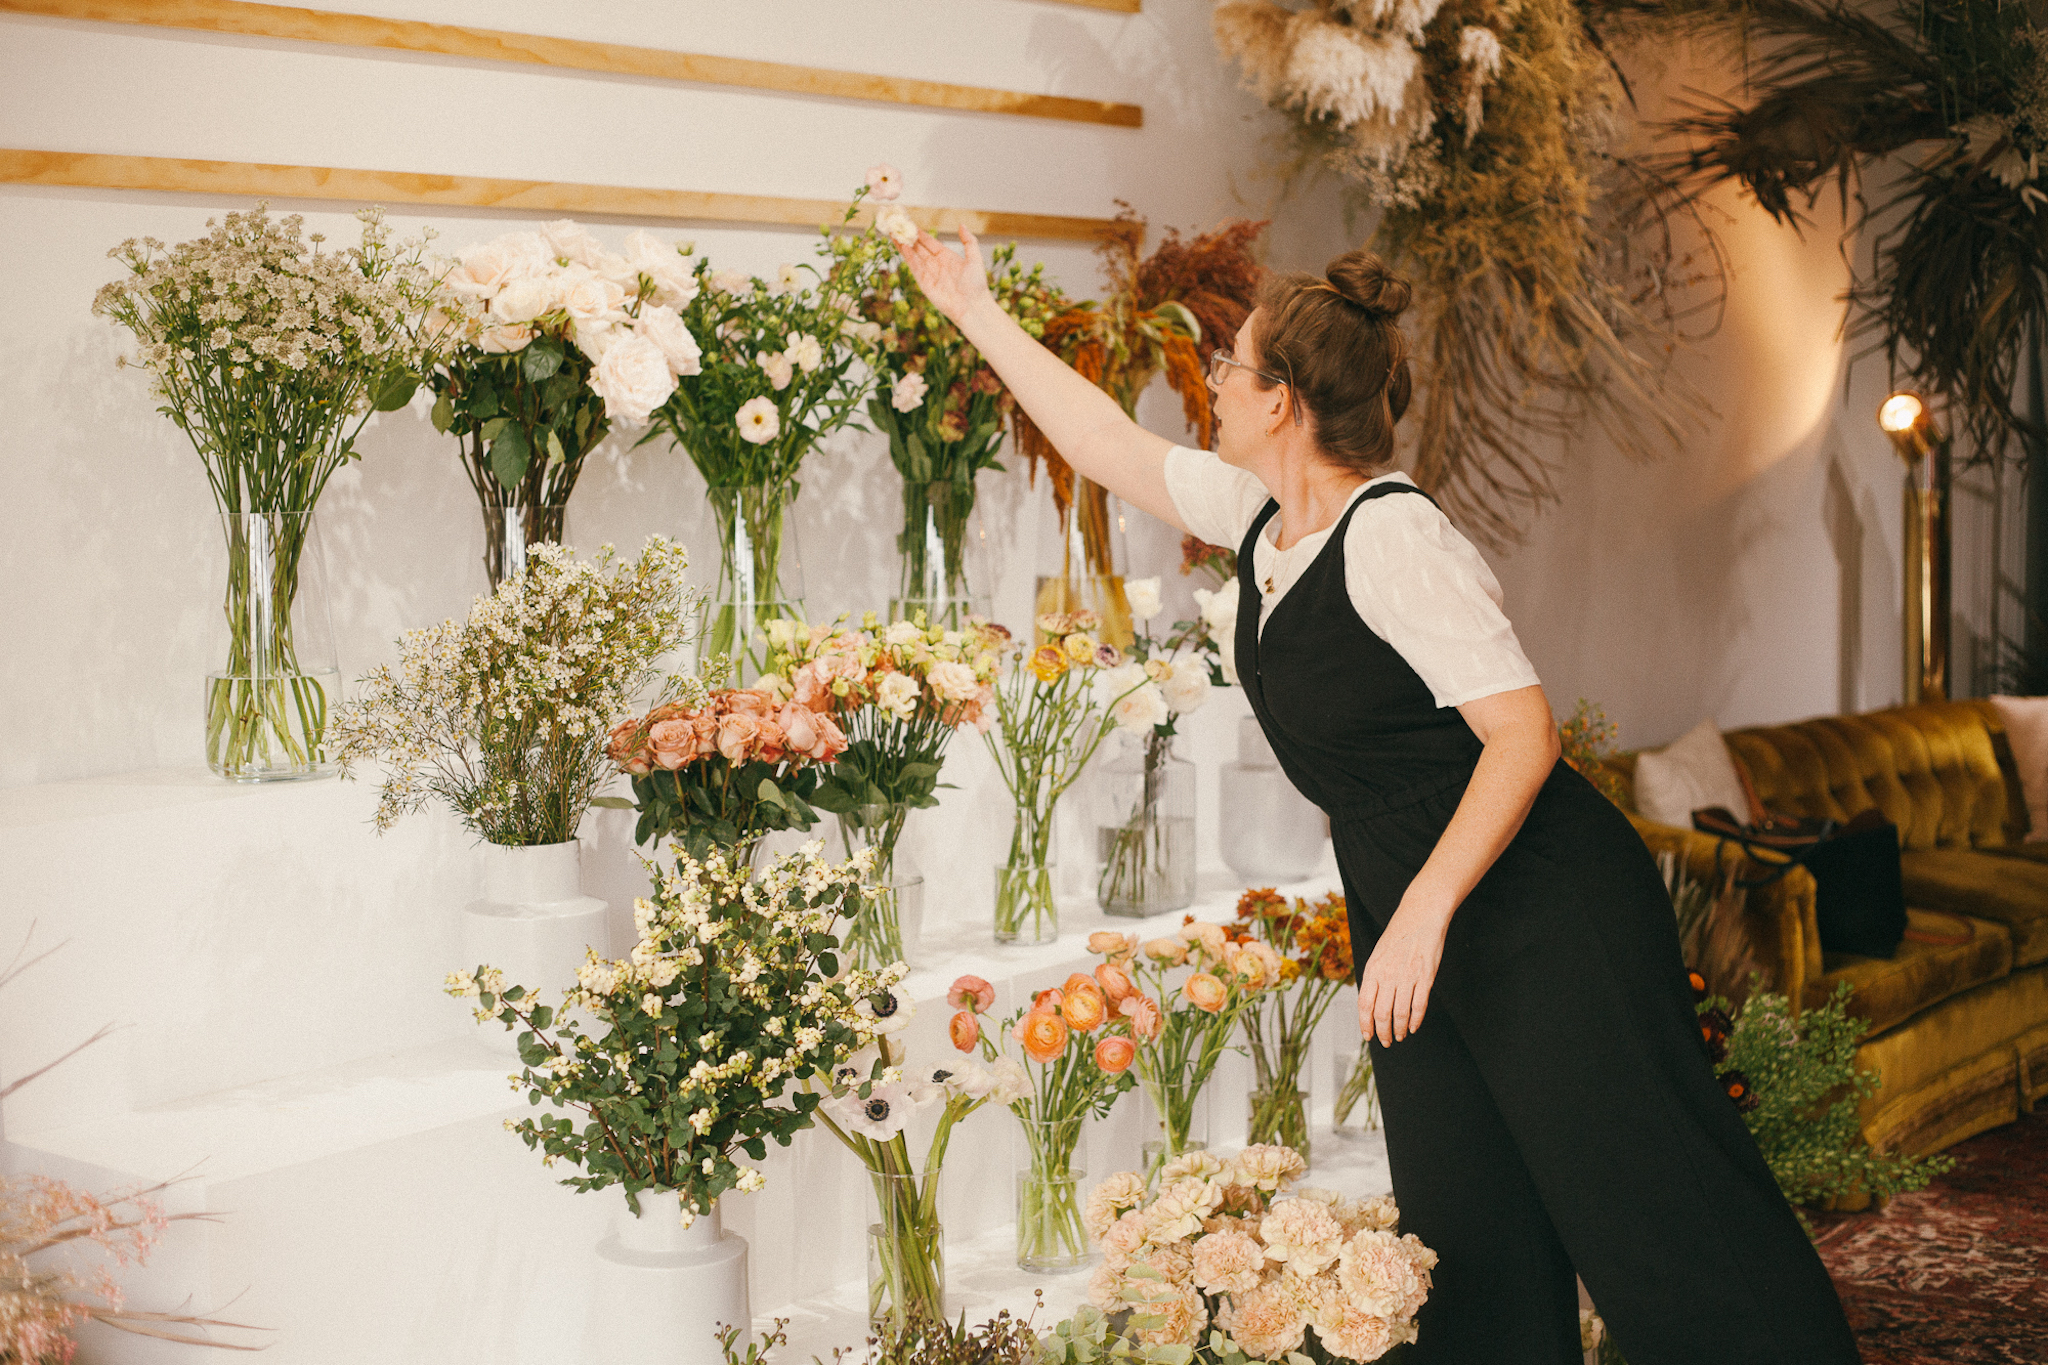 15 Best Flower Shops In Miami To Buy Bespoke Bouquets And More